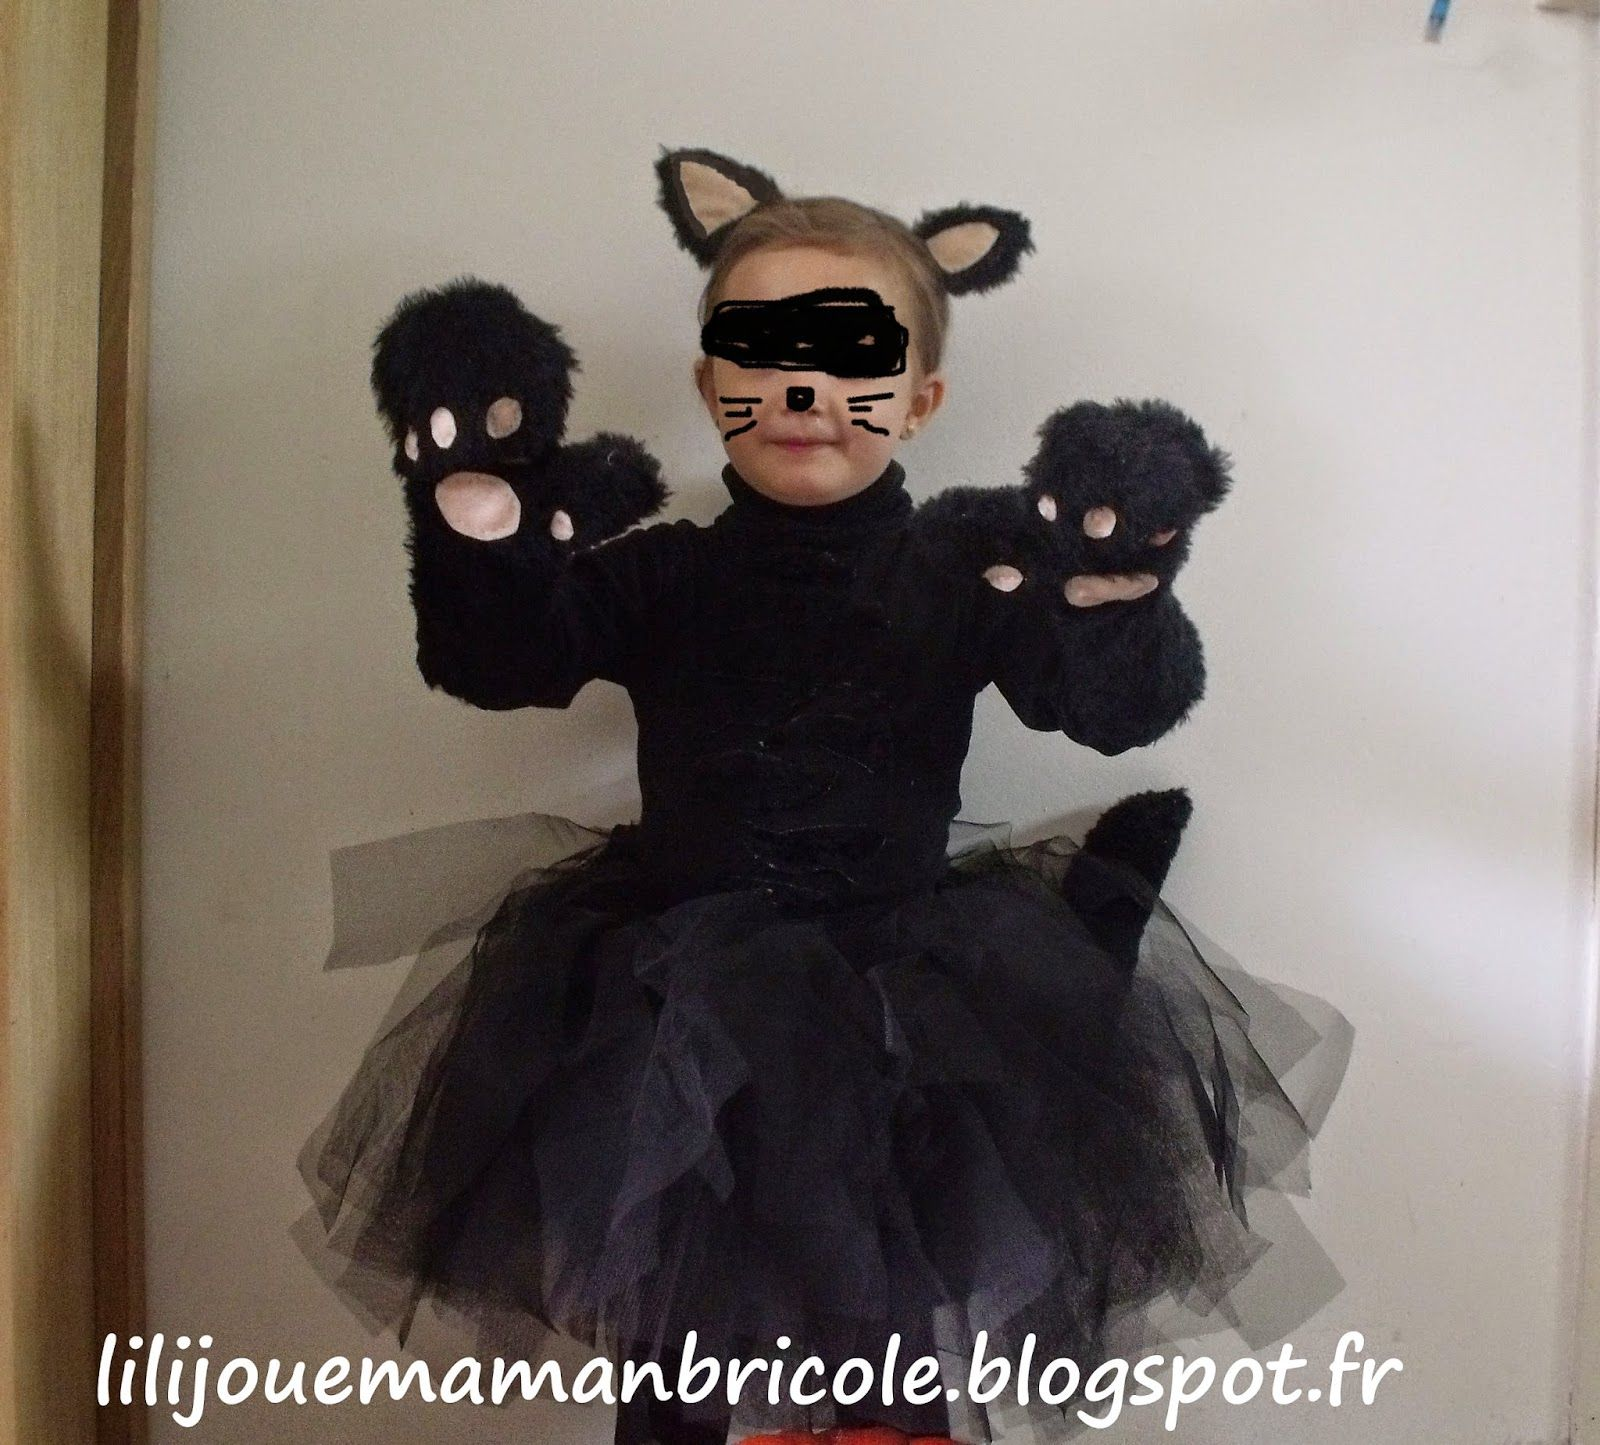 lili joue maman bricole tuto costume chat noir fille pour halloween jeux deguisement en 2018. Black Bedroom Furniture Sets. Home Design Ideas